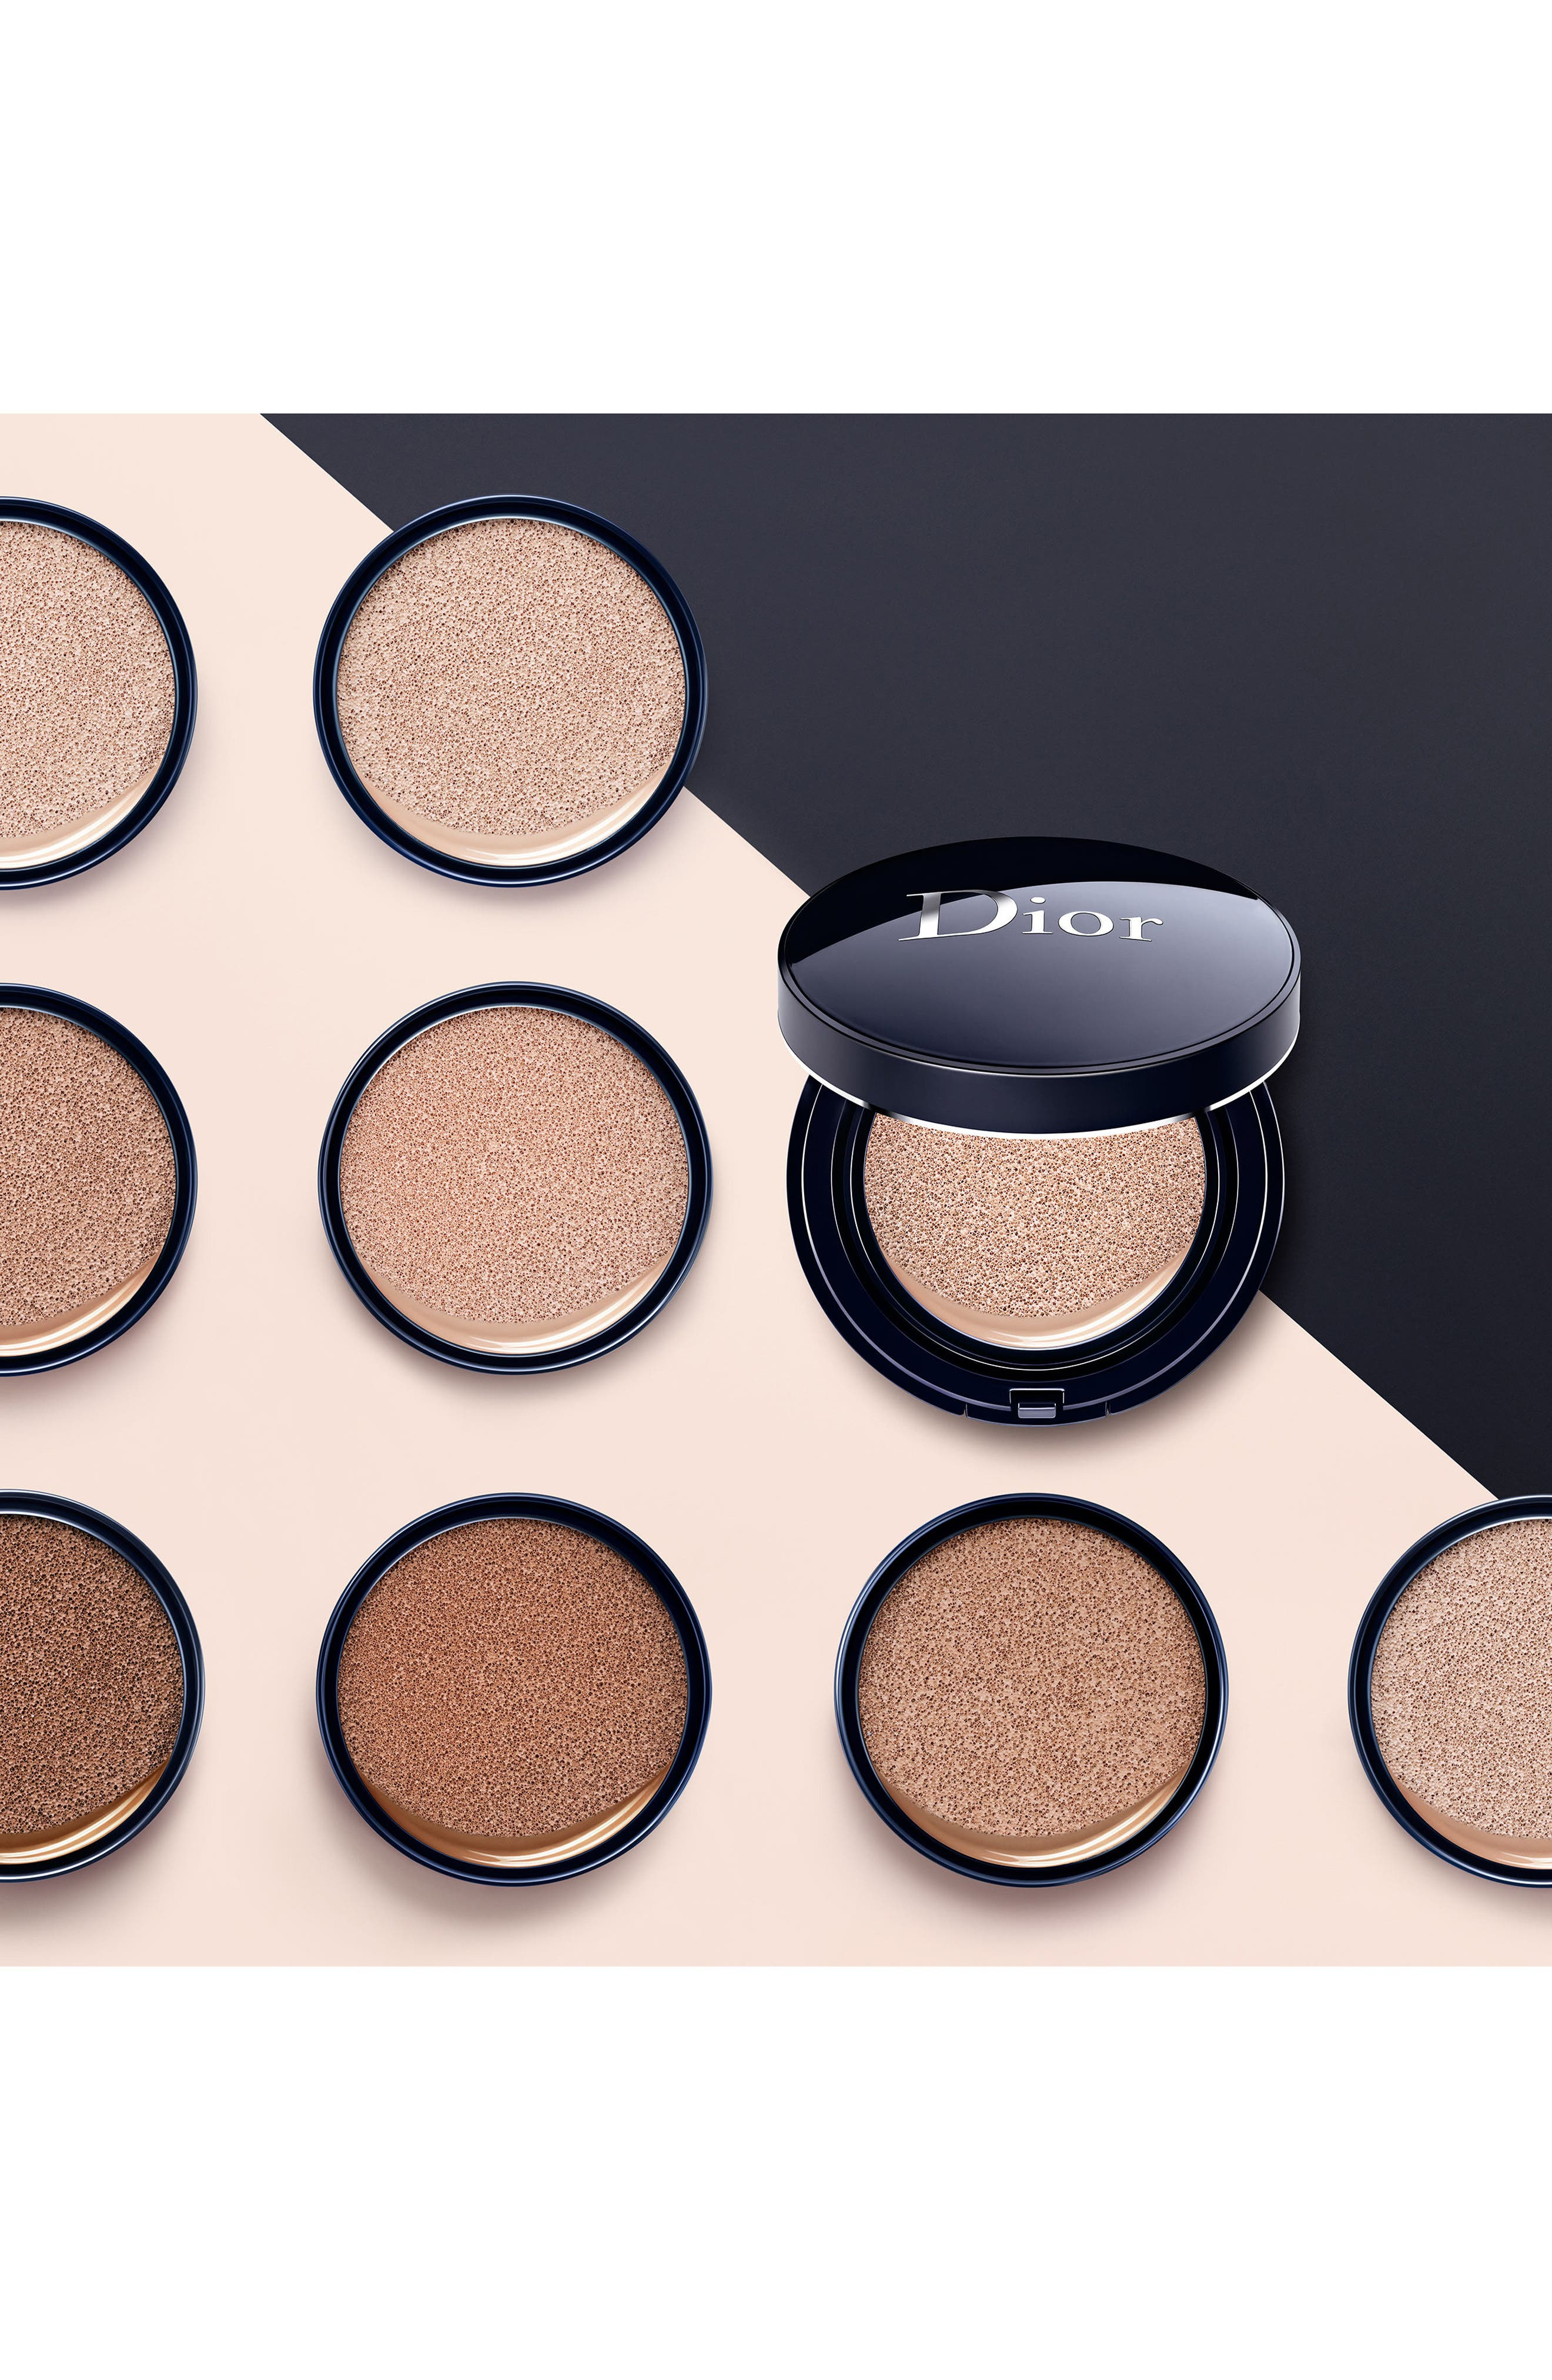 Diorskin Forever Perfect Cushion Foundation Broad Spectrum SPF 35,                             Alternate thumbnail 2, color,